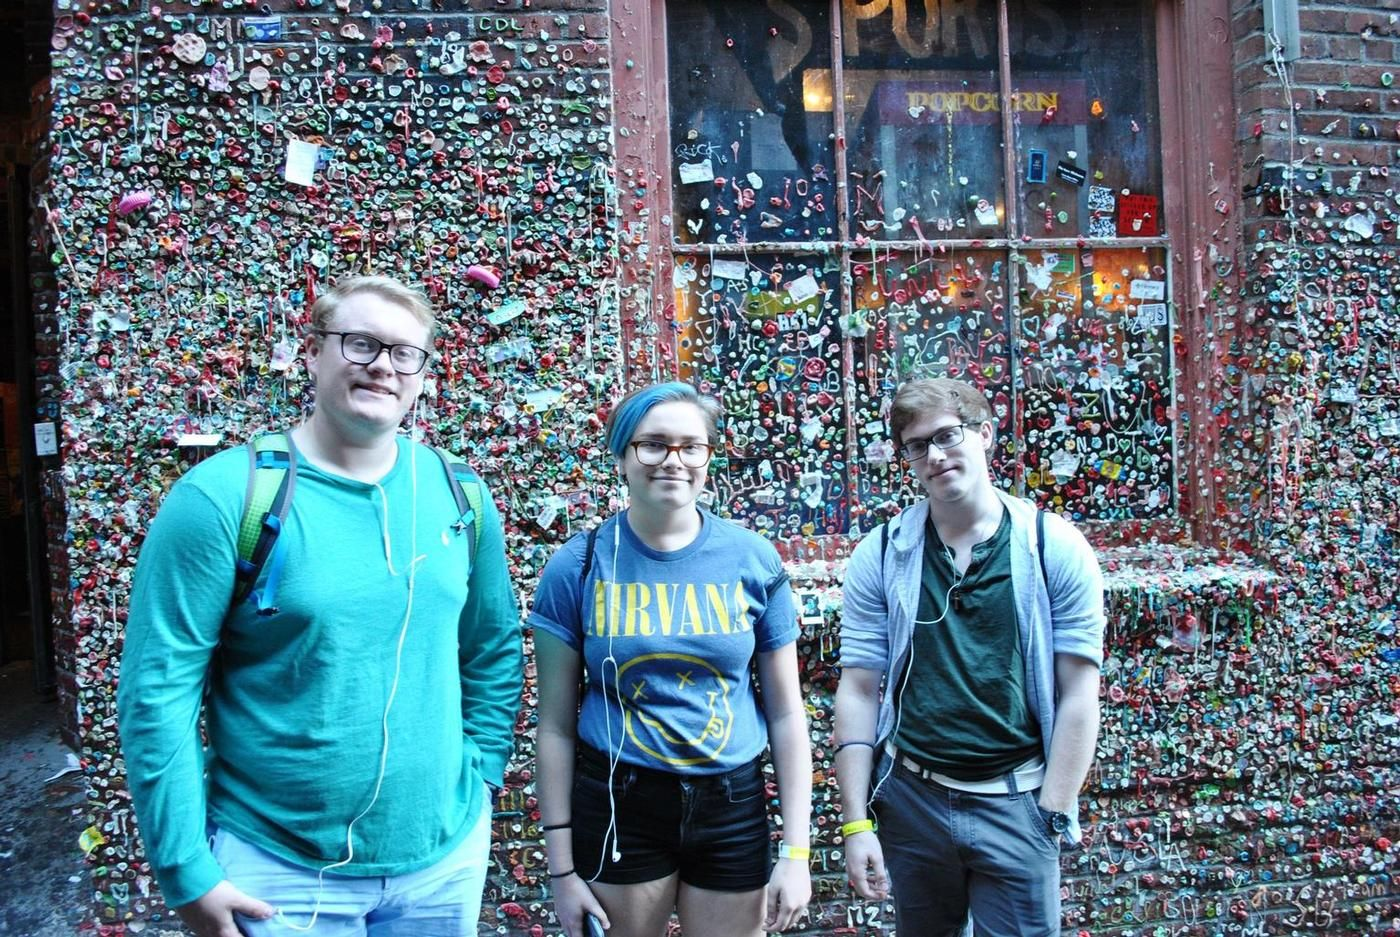 The infamous gum wall.